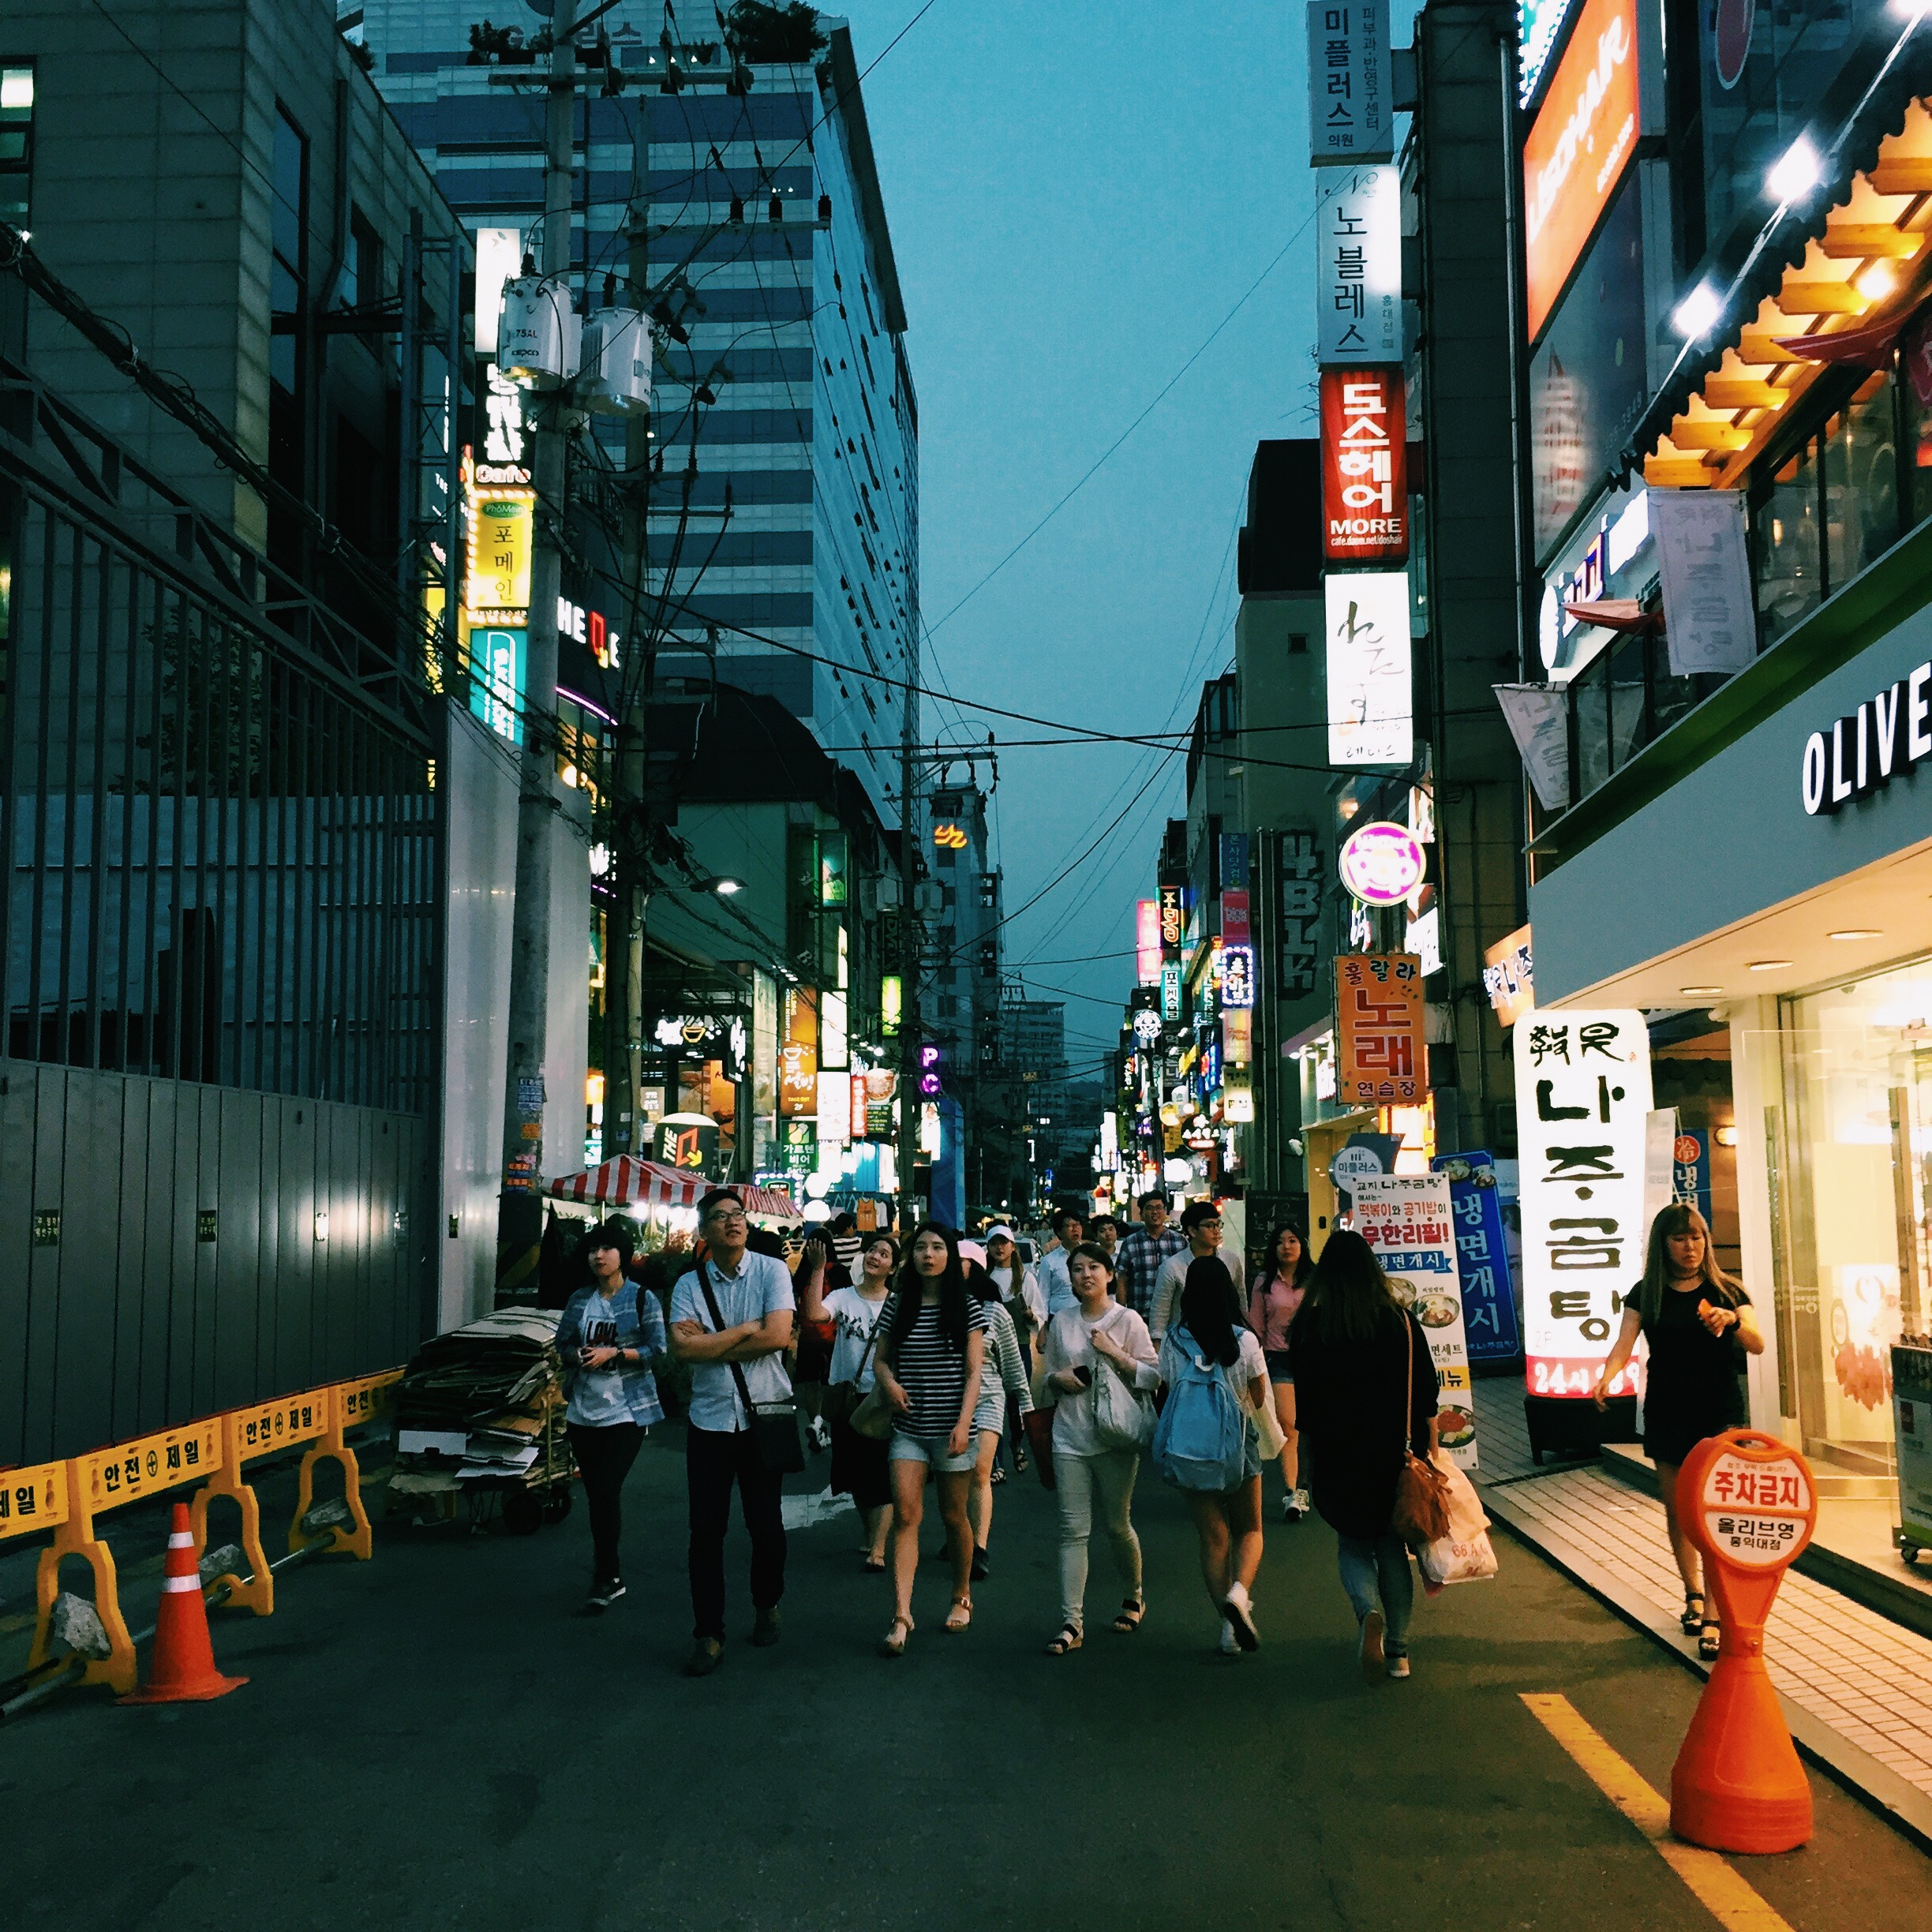 9 p.m. in the heart of Mapo-gu district, a couple blocks from our hotel.